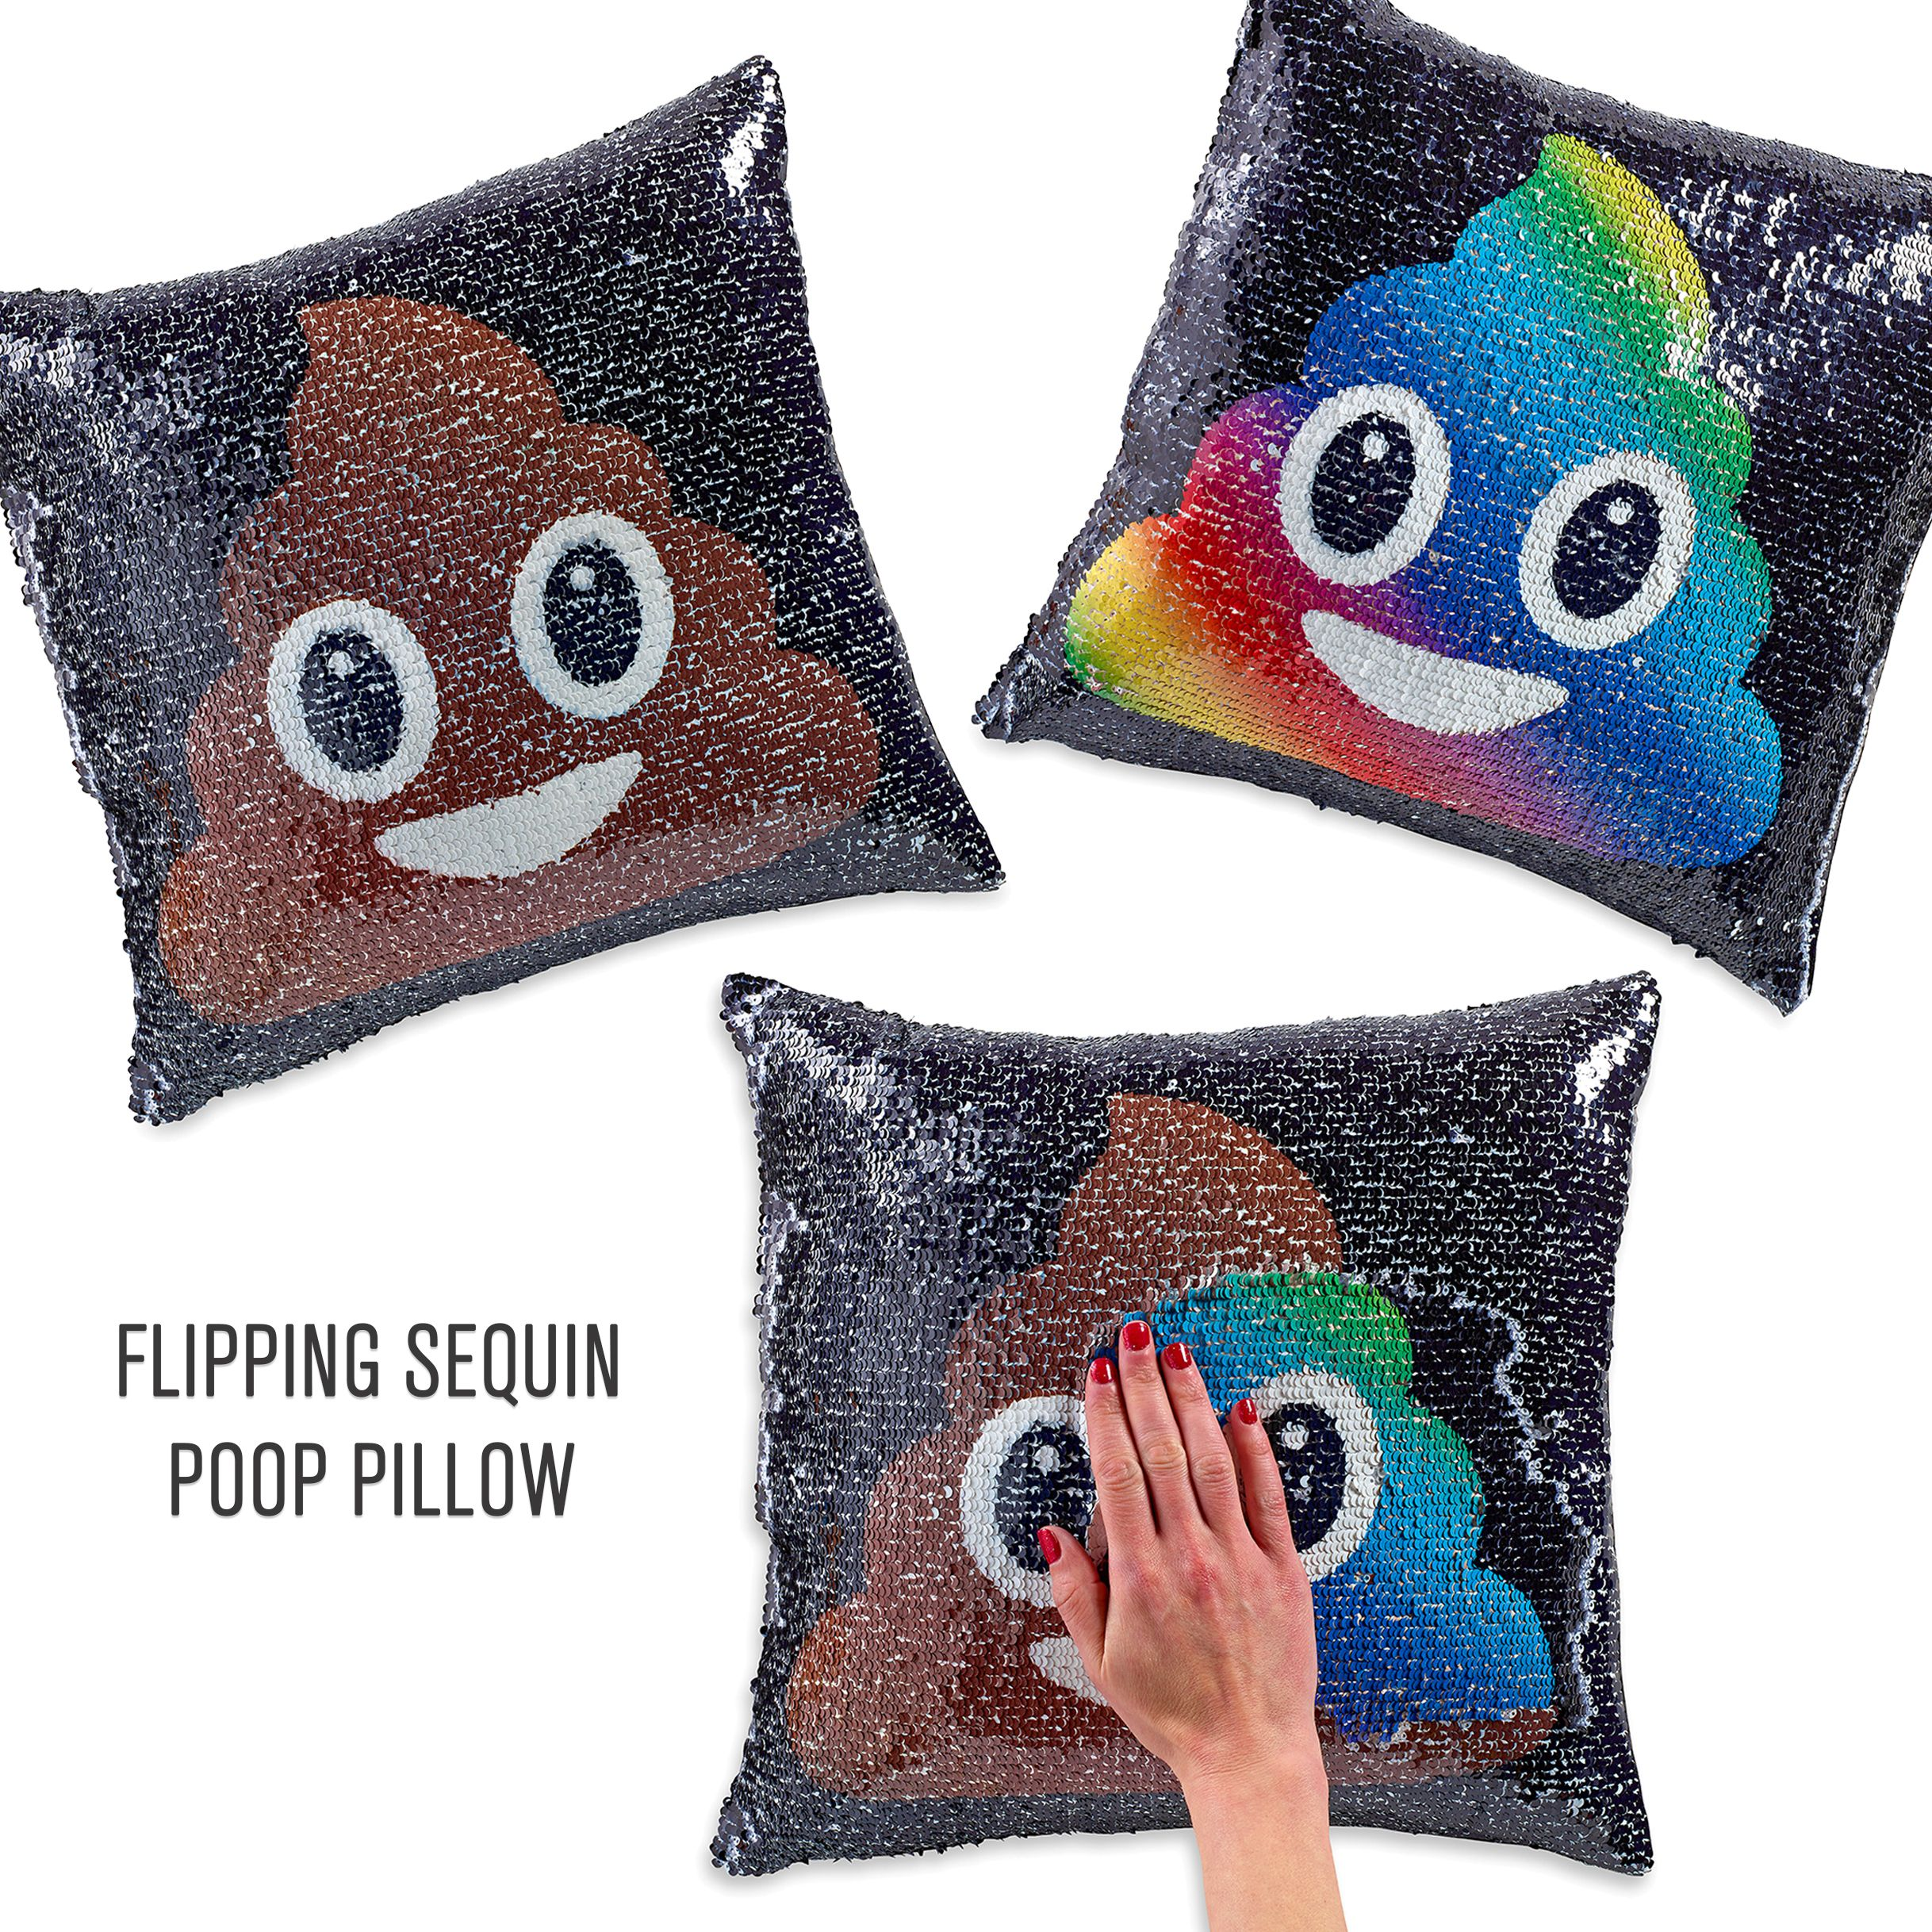 New Flipping Sequin Pillows With Emoji Faces Flip The